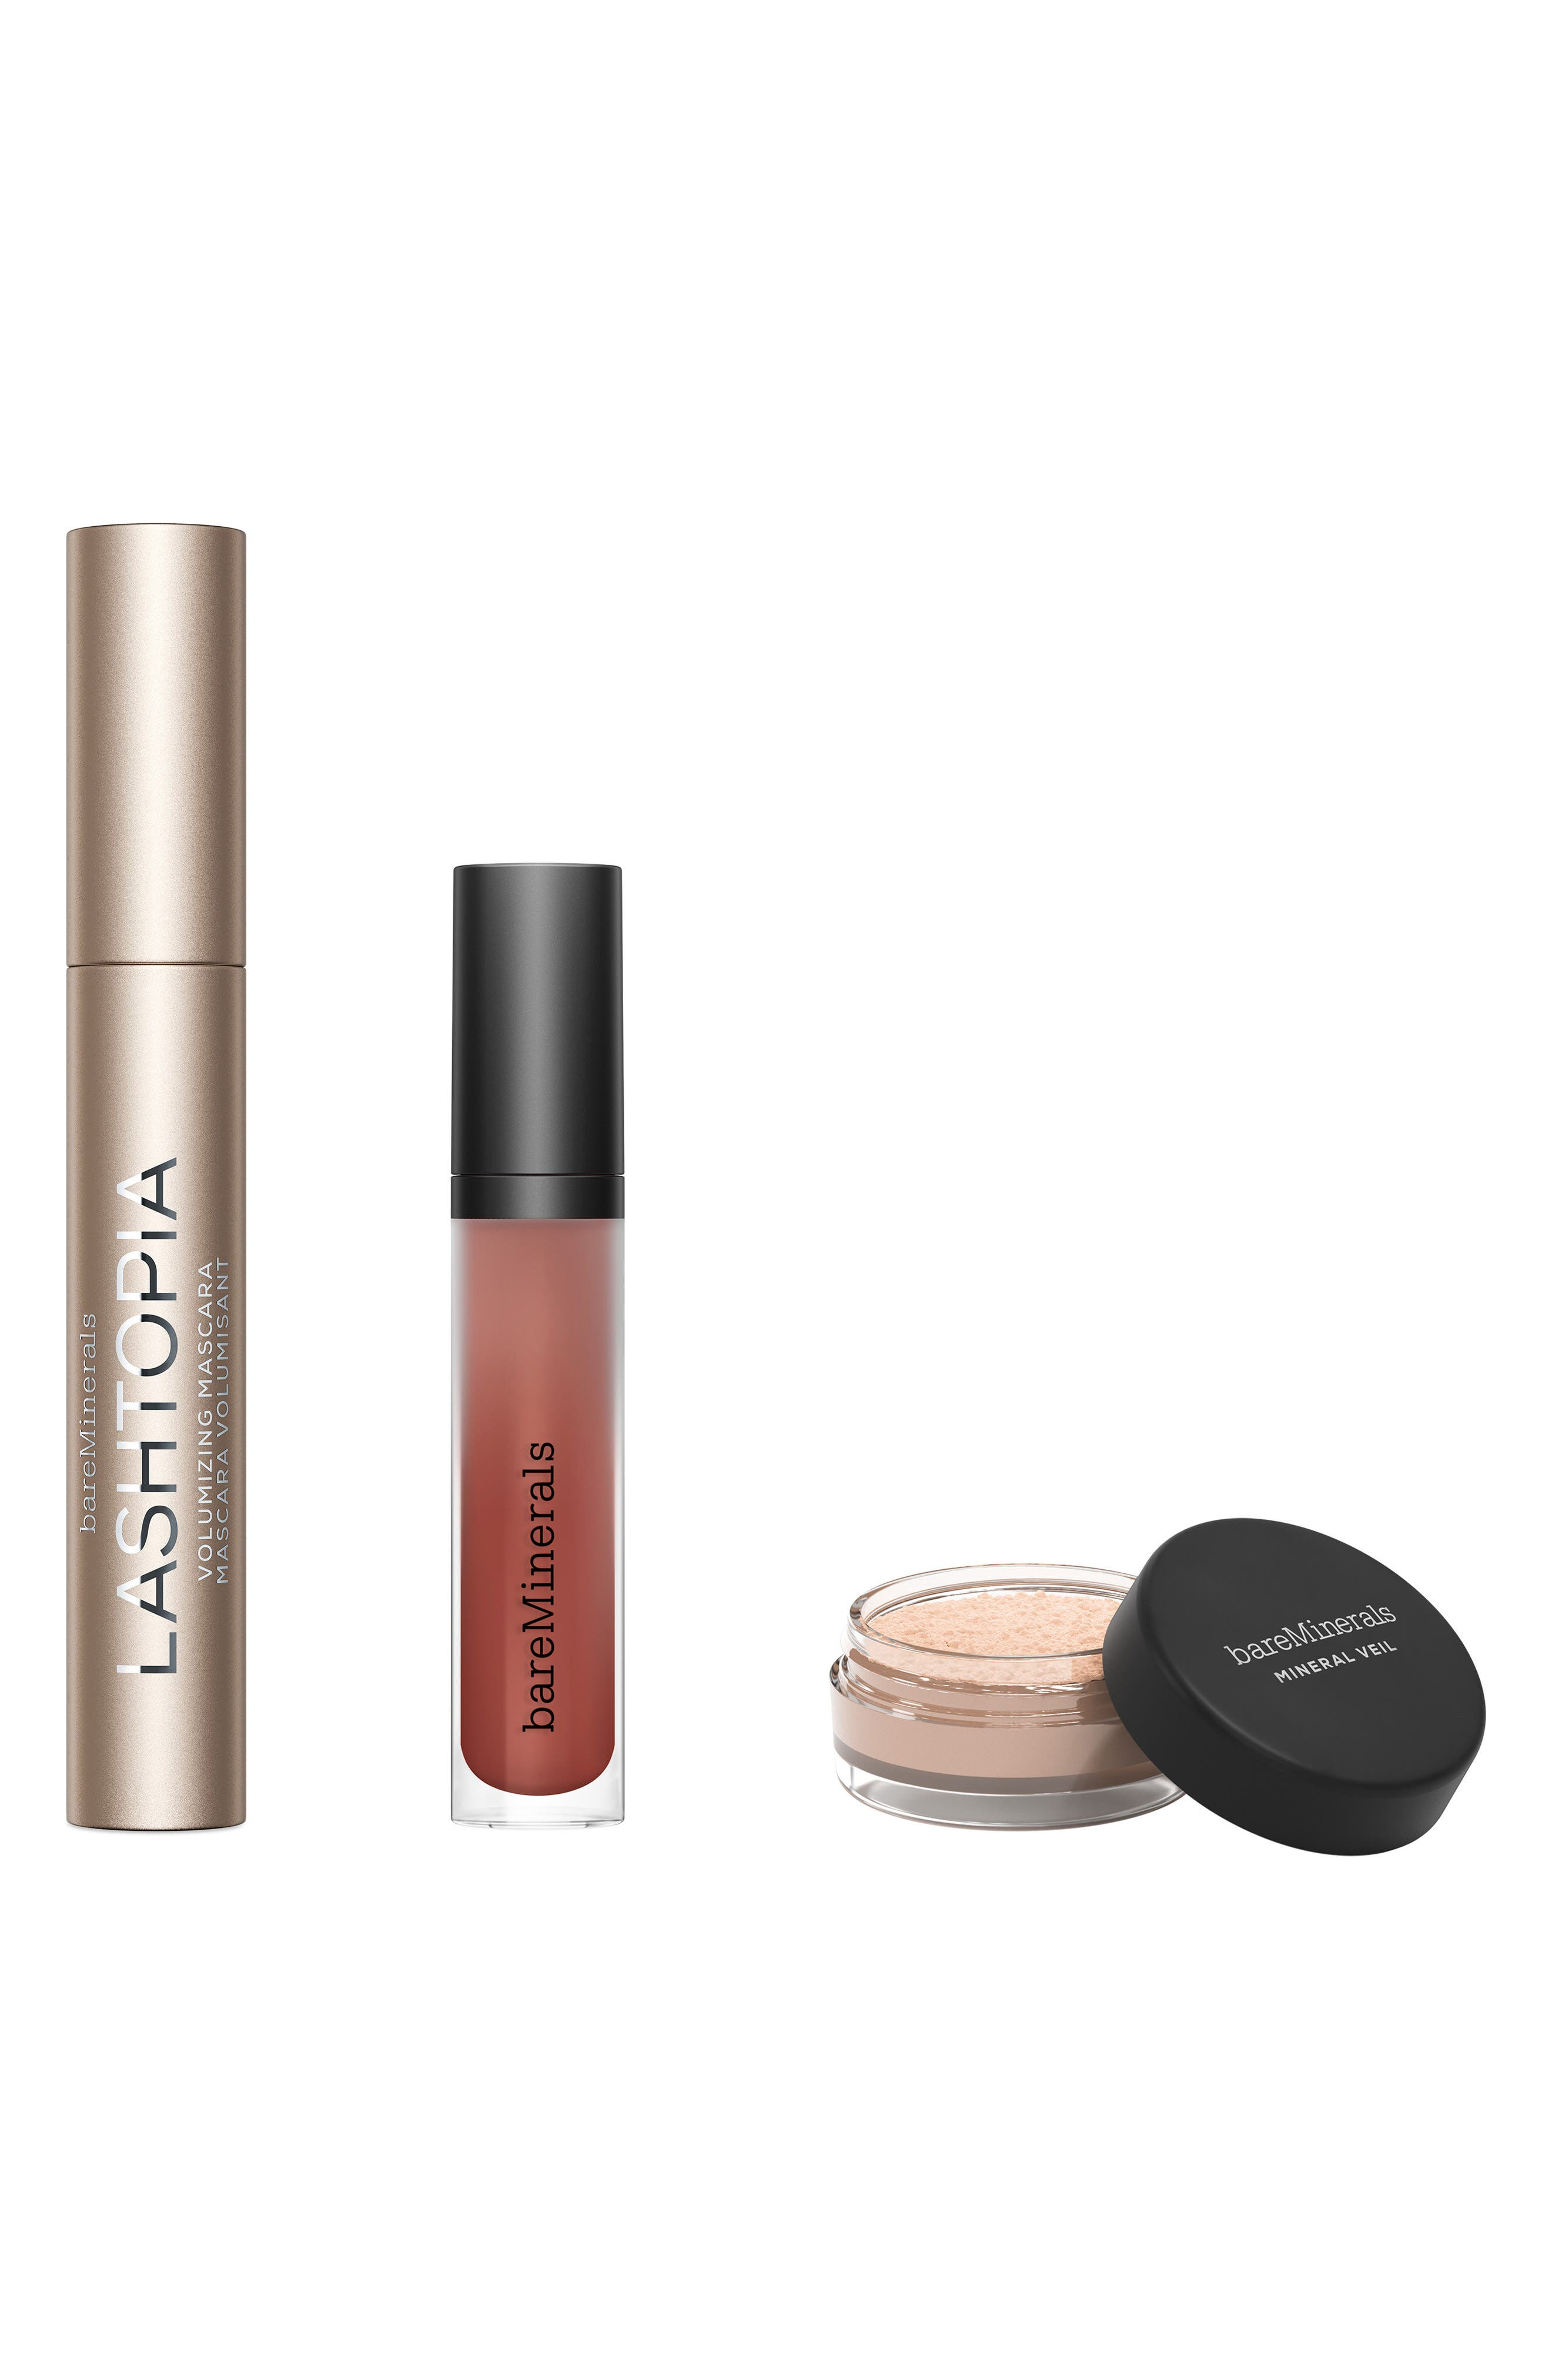 What it is: A limited-edition set featuring three makeup favorites in full and travel sizes, wrapped up in eco-friendly packaging. Set includes:- Full-size Lashtopia Mega Volume Mineral-Based Mascara (0.4 oz.): a lash-loving mascara that adds a boost of volume to your lashes- Full-size Gen Nude Matte Liquid Lipcolor in Bo$$ (0.12 oz.): a vegan liquid lipstick that provides full-coverage cream-to-matte color- Travel-size Mineral Veil Finishing